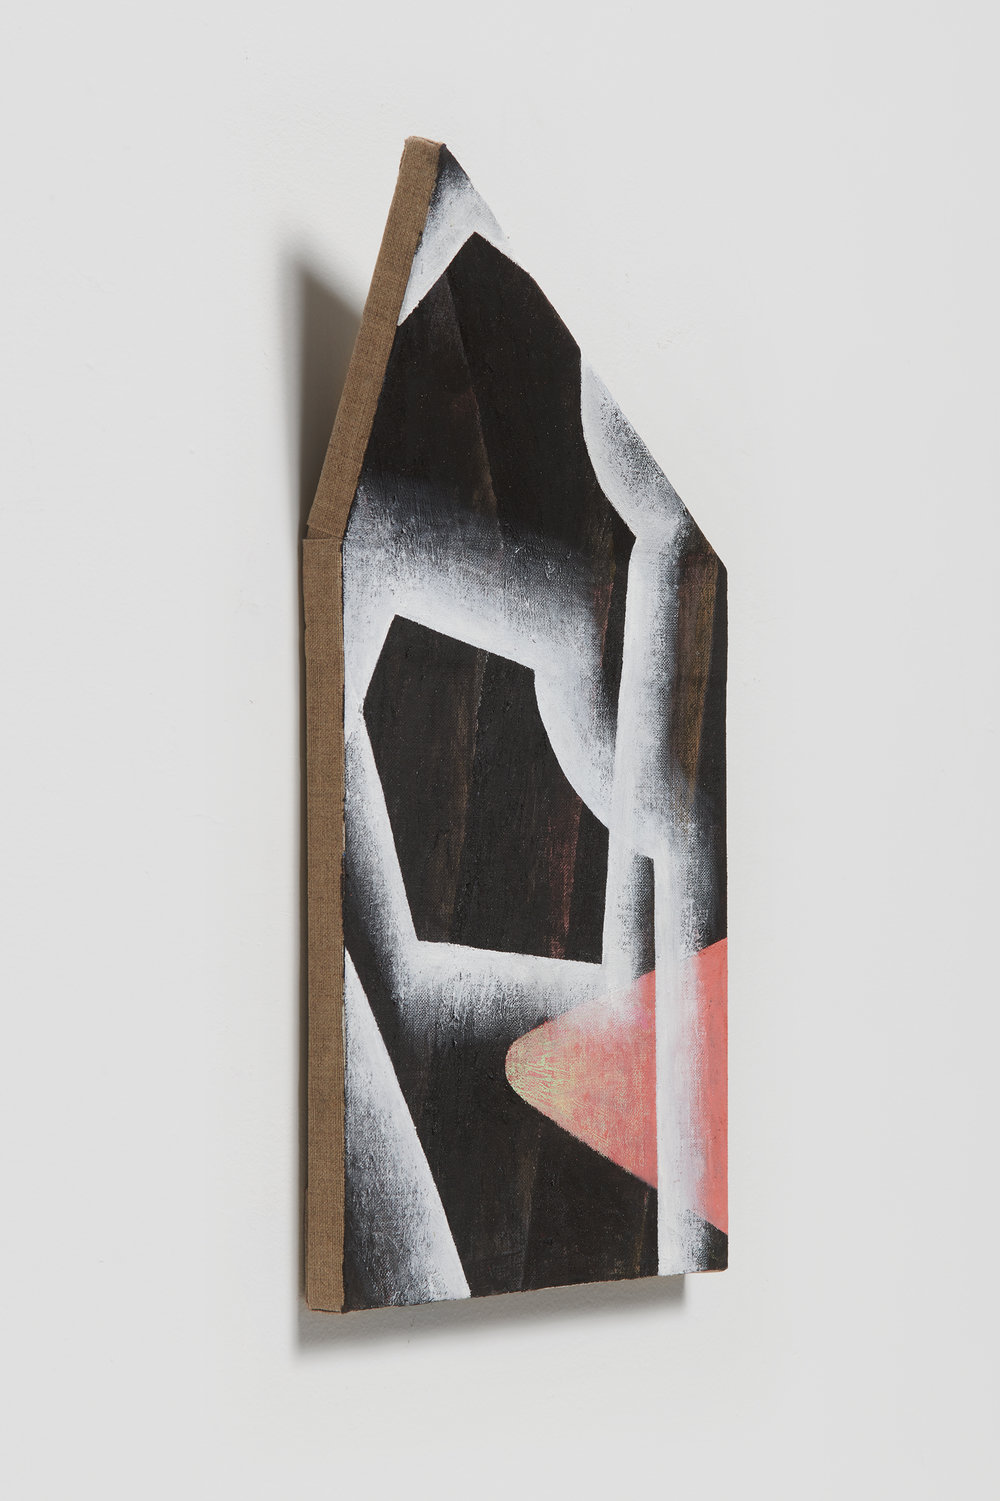 Ezra Tessler, The Unreleyeable Organ , 2018 Oil and dirt on linen on shaped wood 17 x 9 x 3 inches